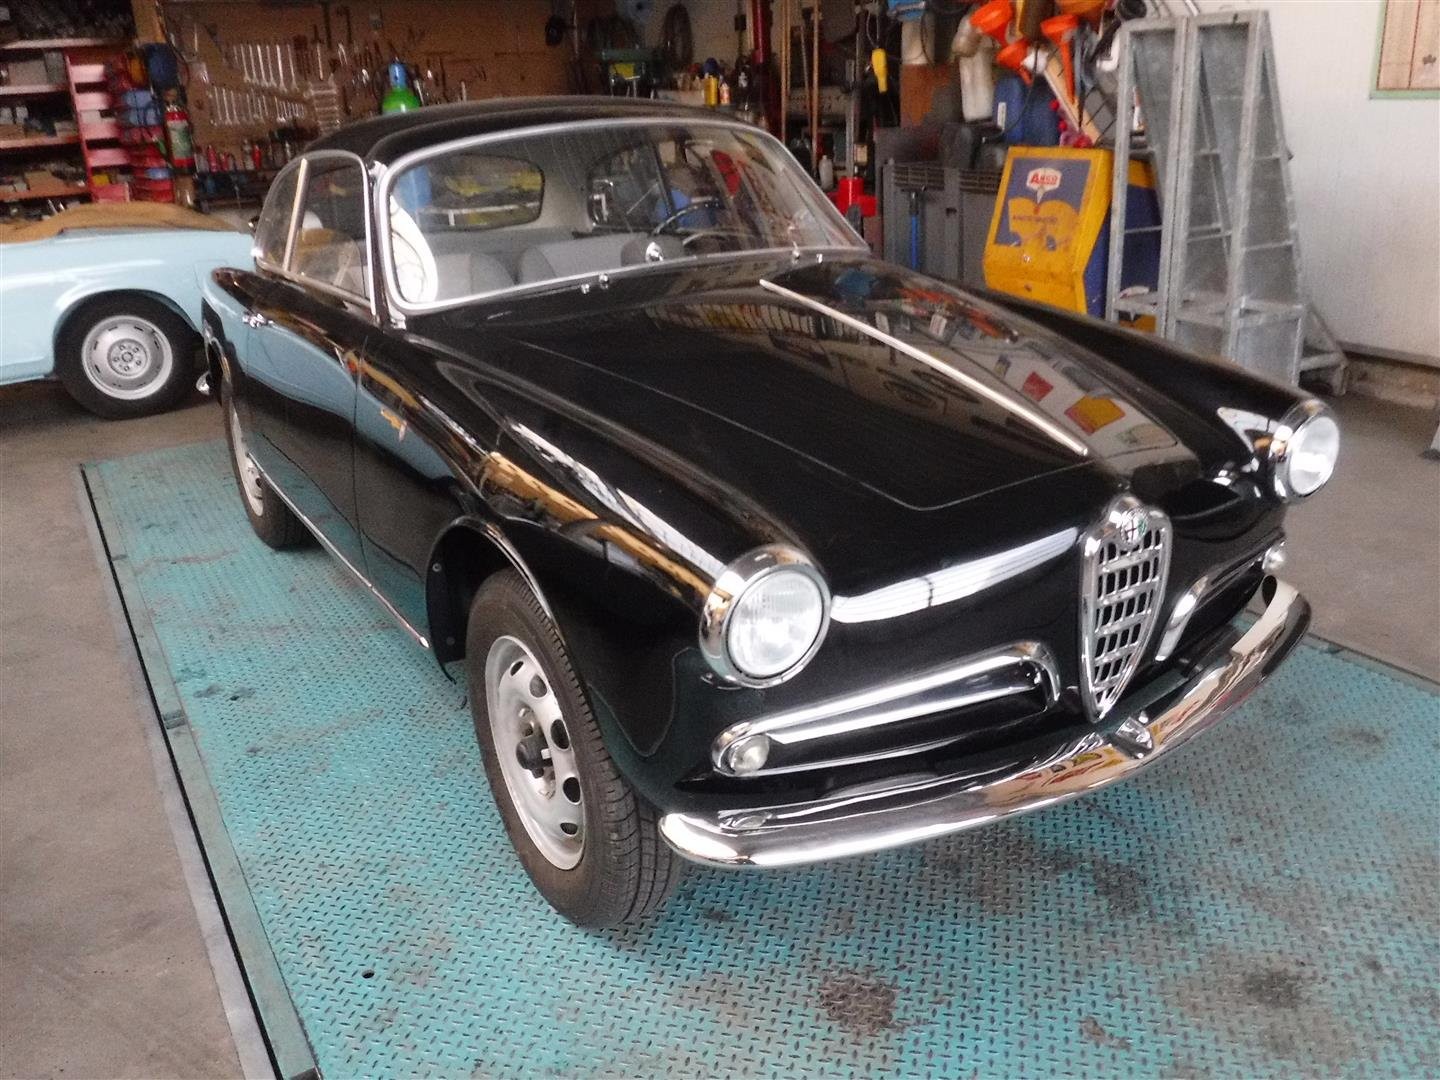 1956 ALfa Romeo 1300 sprint type 750 For Sale (picture 1 of 6)